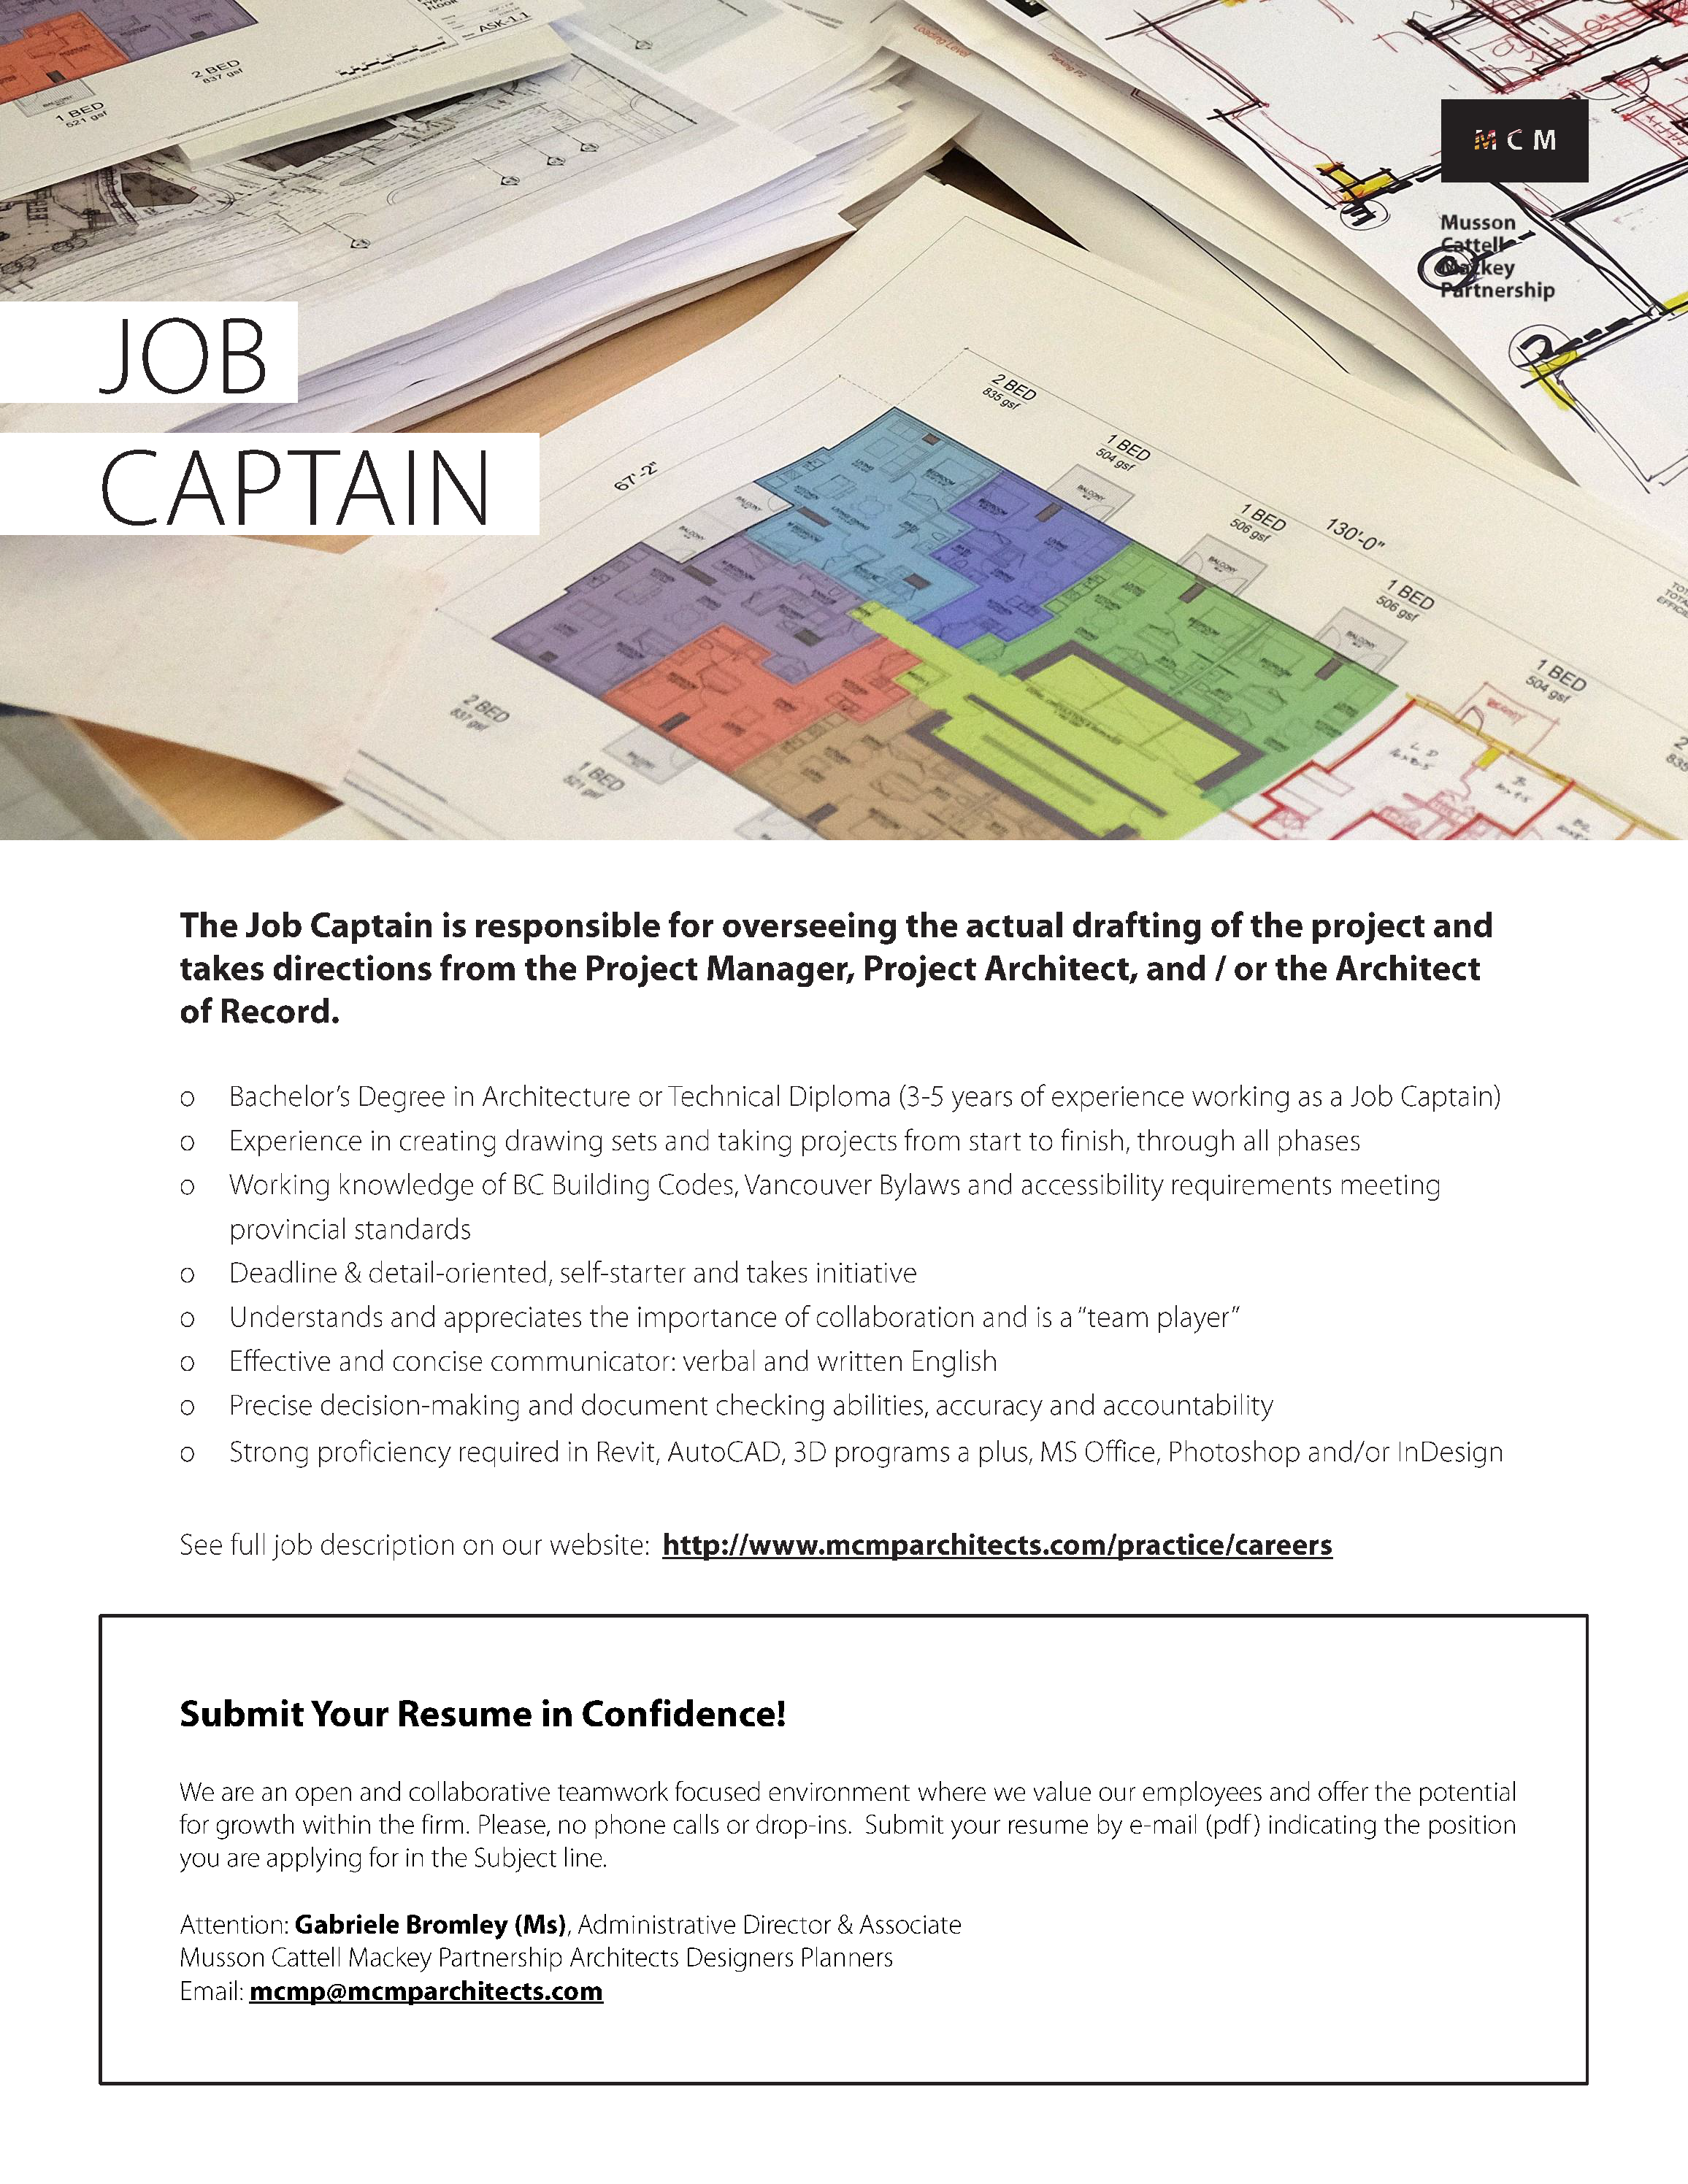 architectural project manager job description how to write a job captain oct 19 architectural project manager